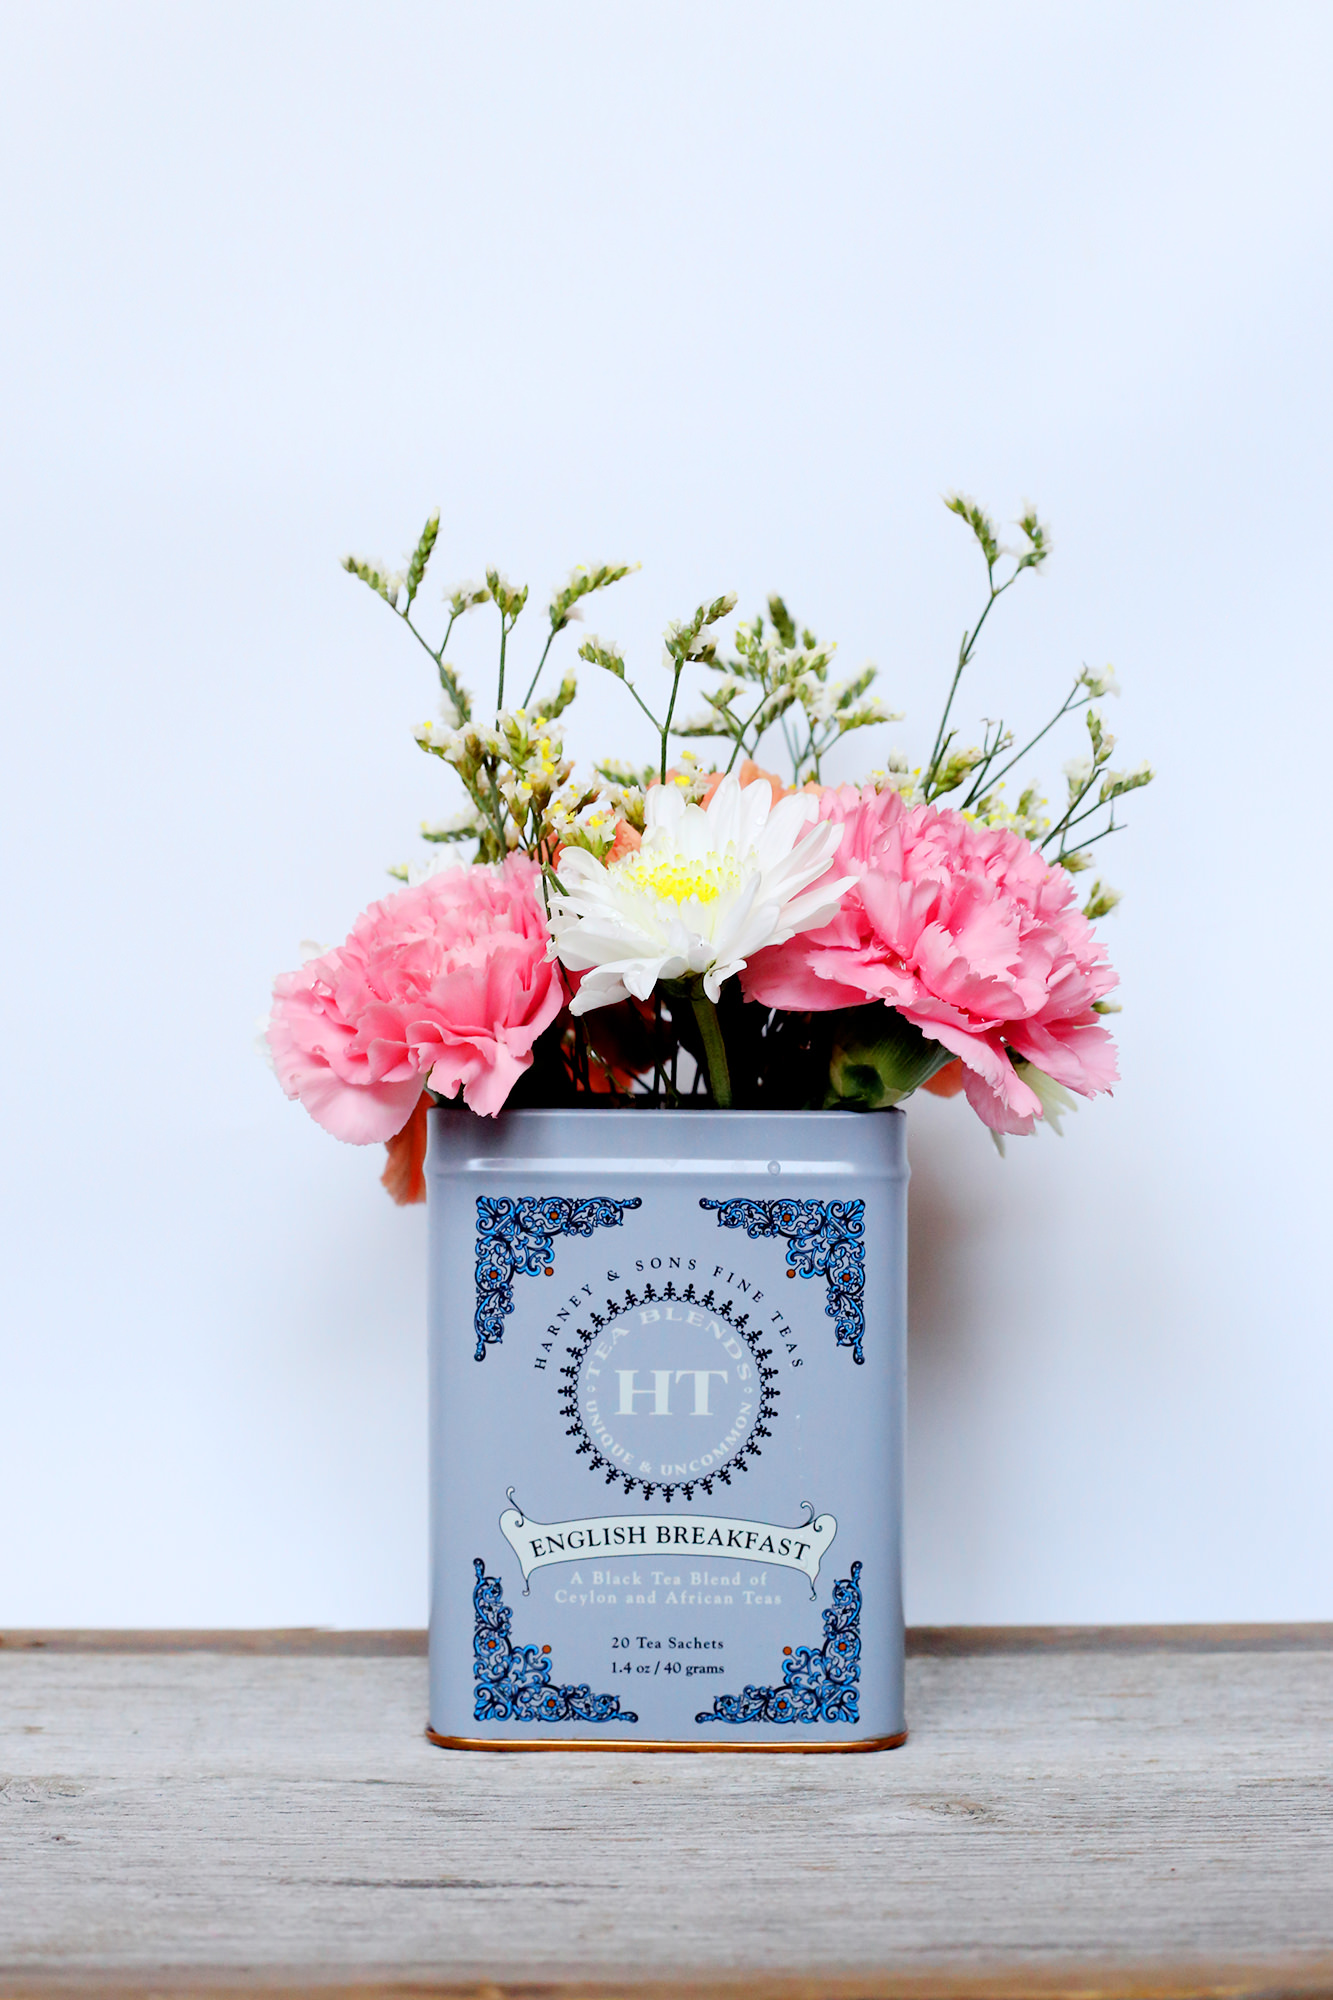 Harney & Sons Tea tins make for beautiful flower vases! Fun colored tins make all the blooms pop!